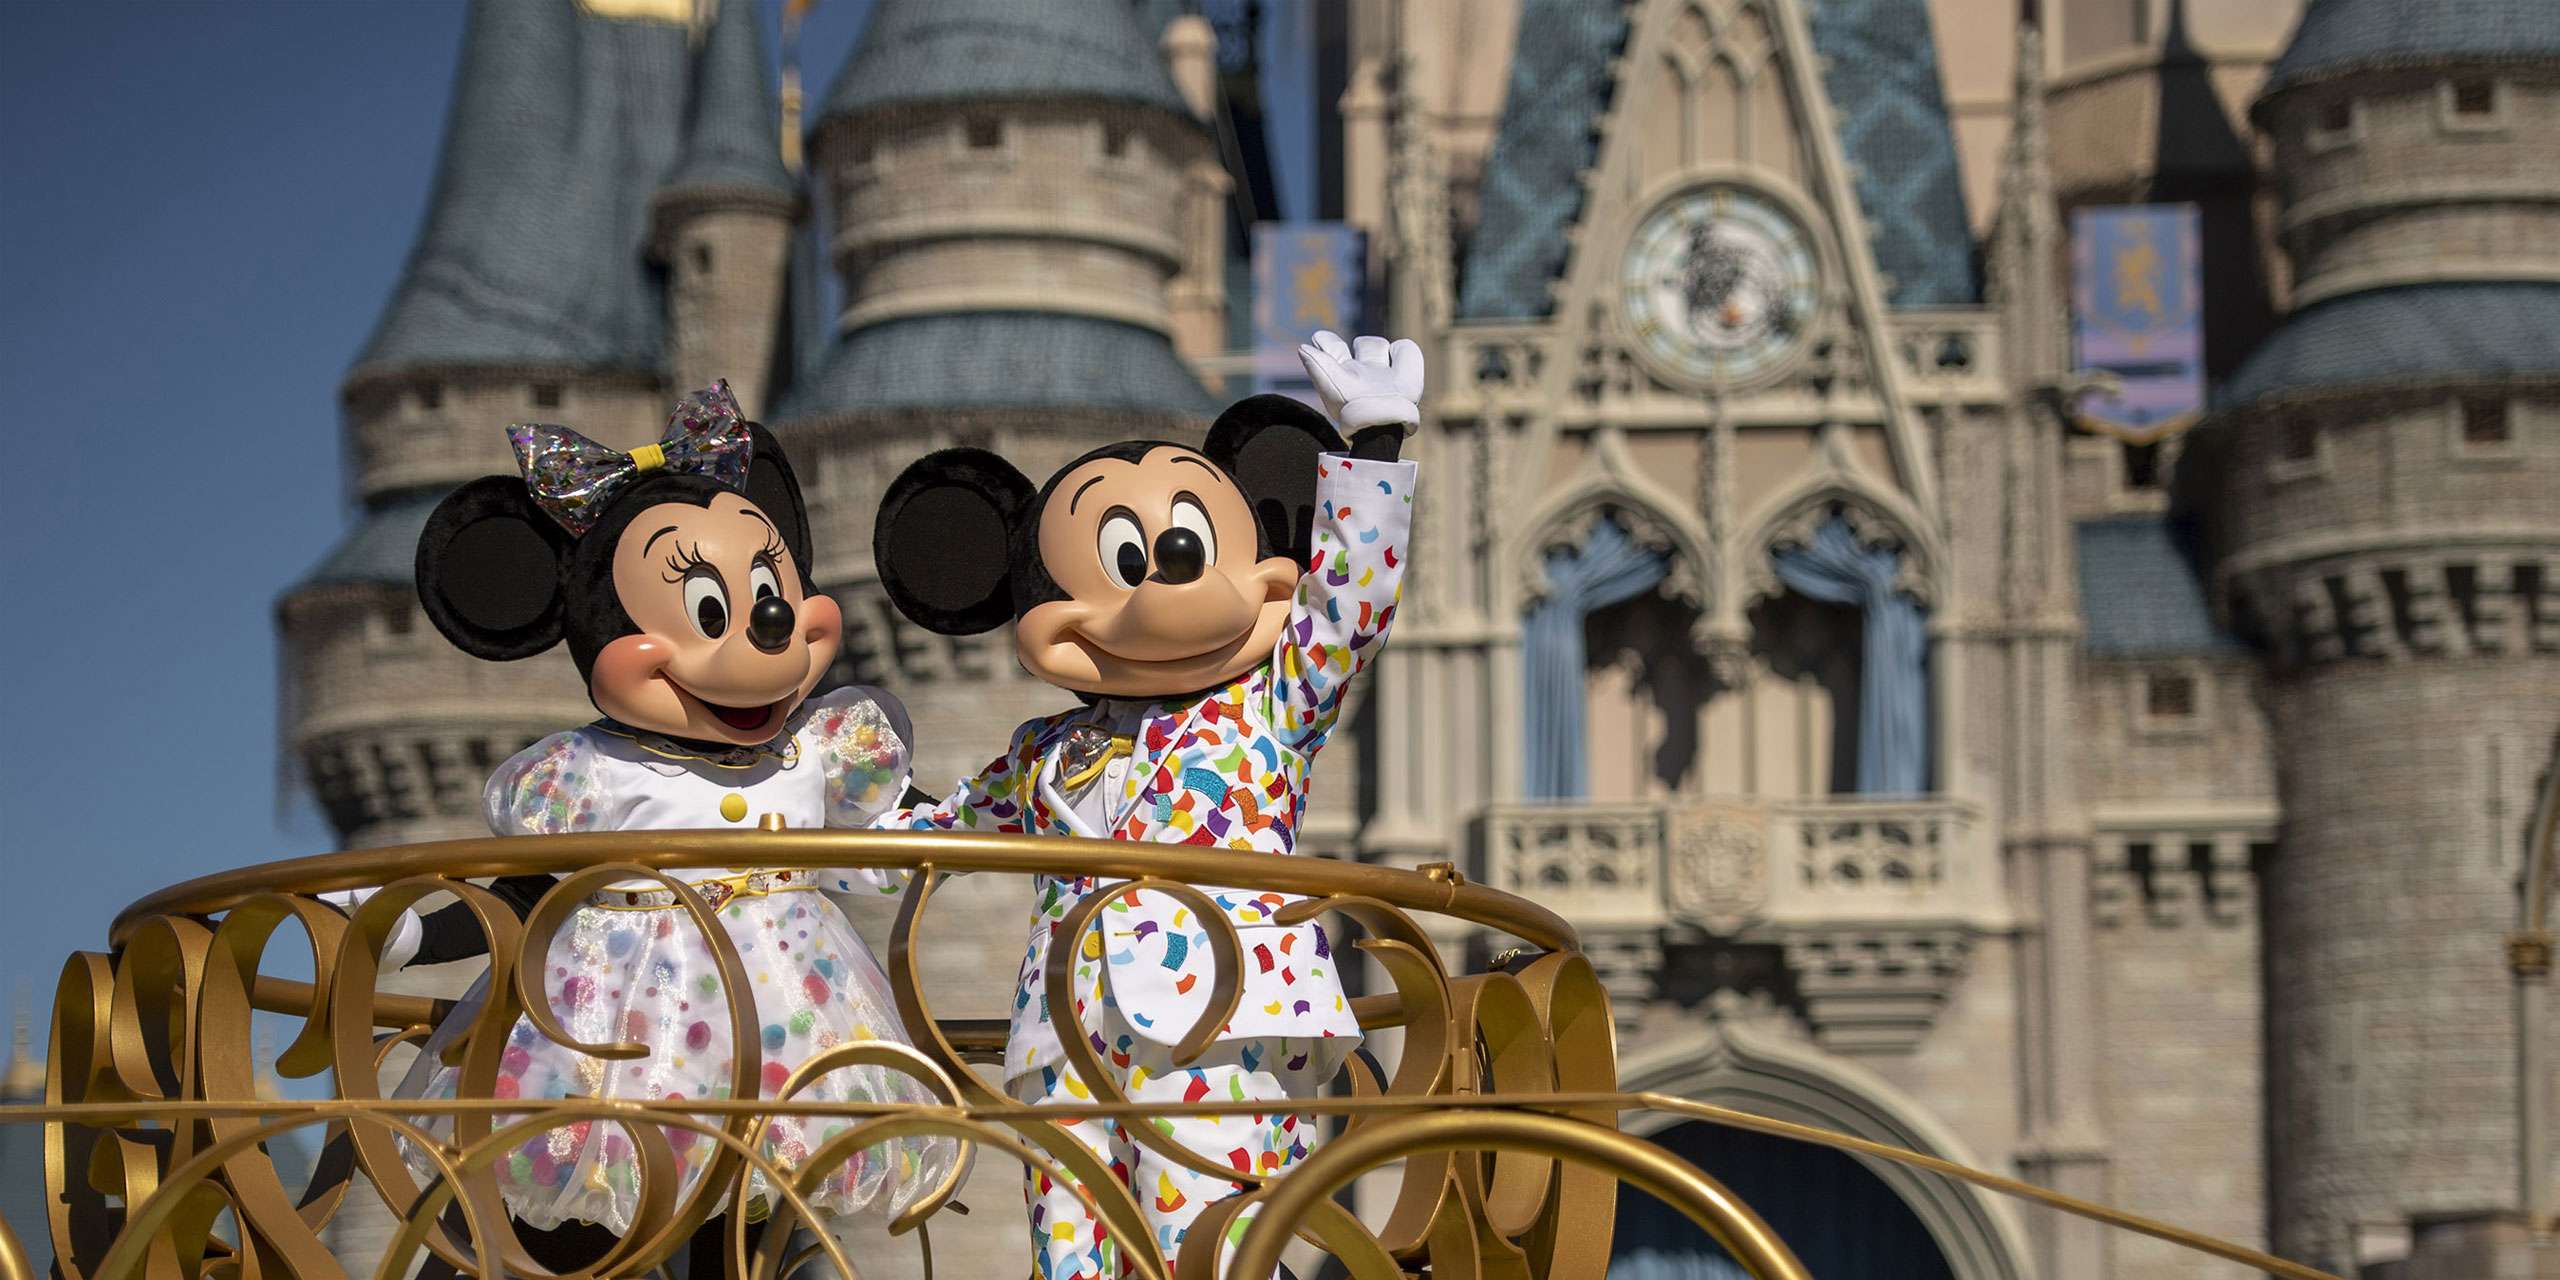 Mickey and Minnie at the Magic Kingdom in Disney World; Courtesy of Disney